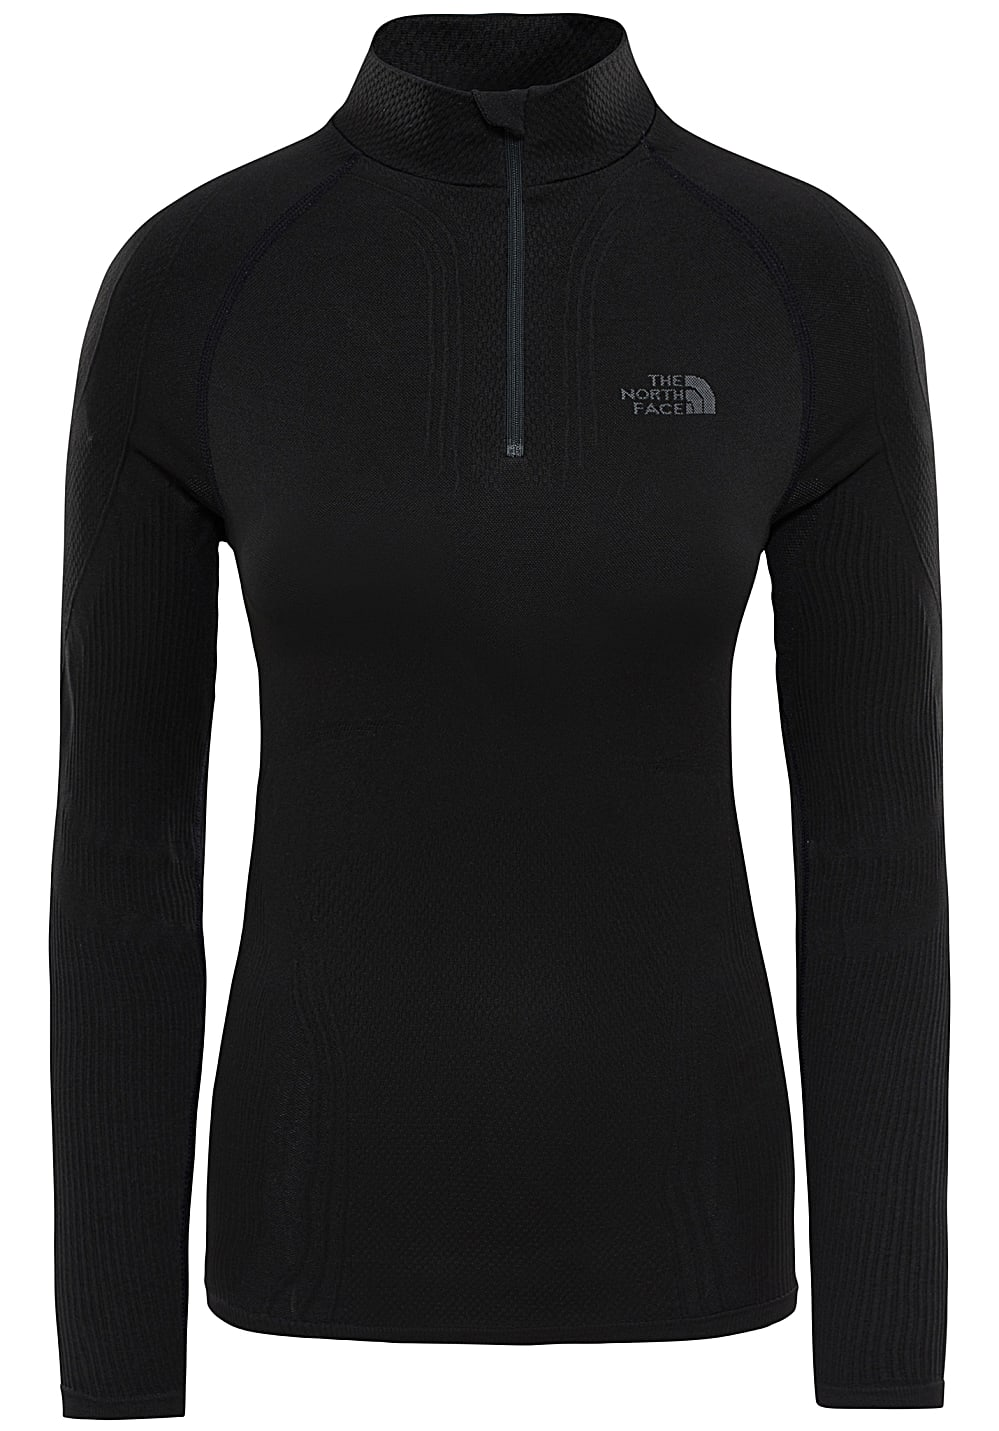 dde41591d THE NORTH FACE Hybrid Zip Neck - Thermal Underwear for Women - Black